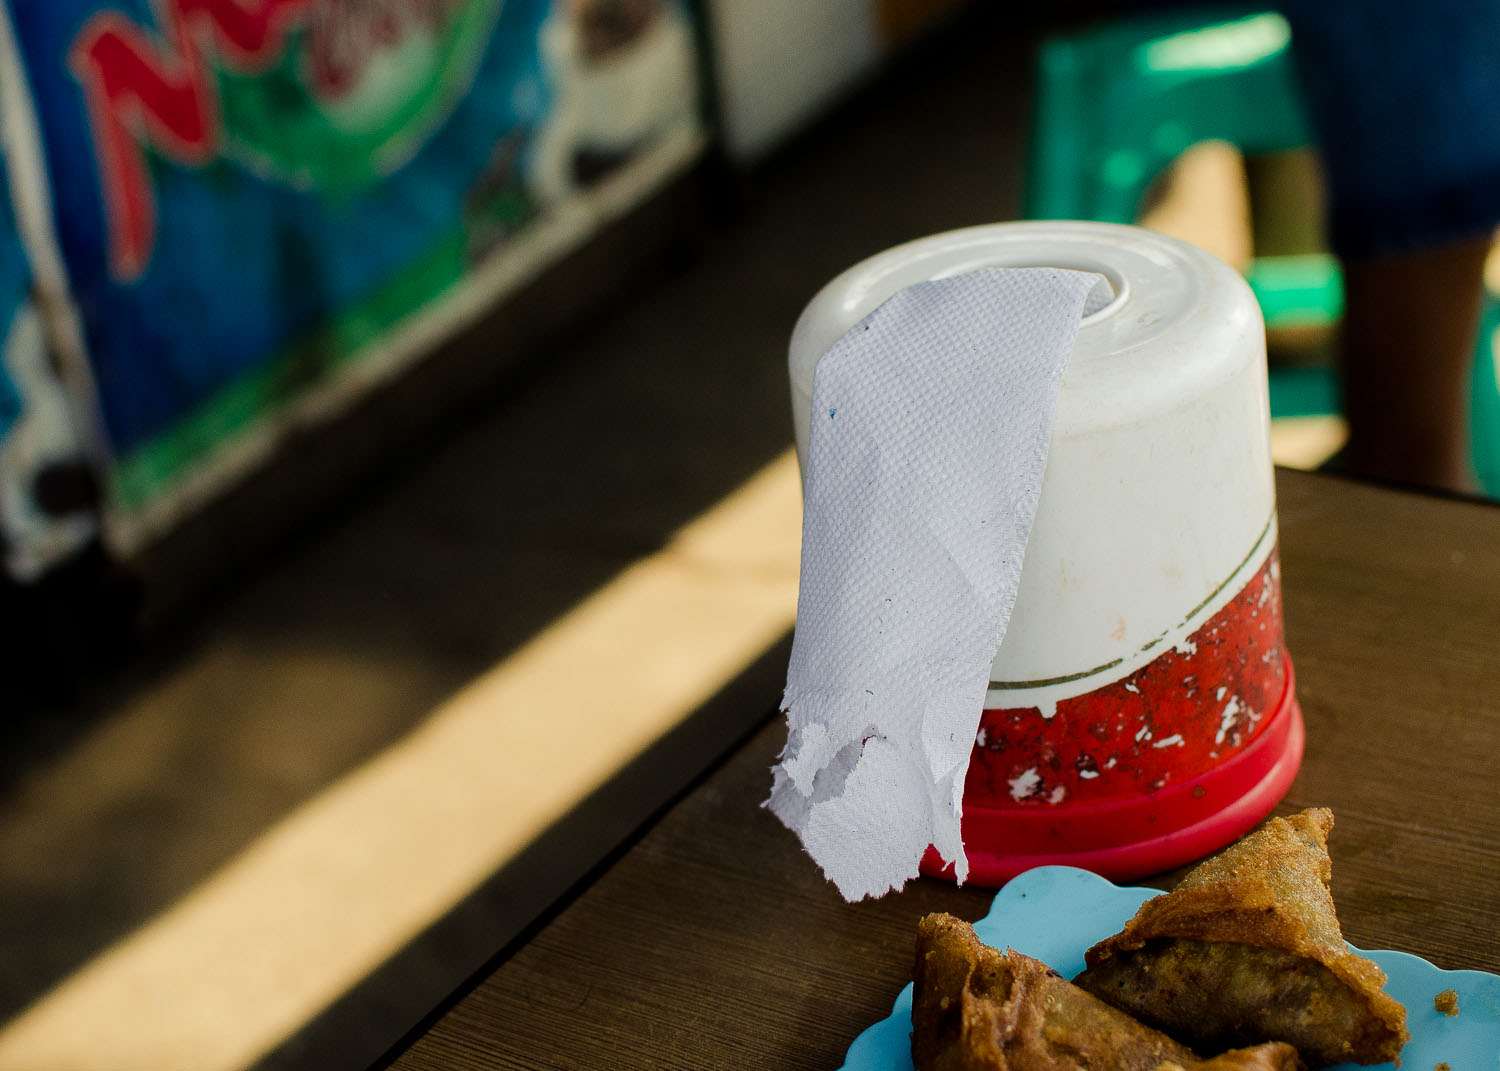 Tissue rolls for cleanup, and you might need them after eating a greasy pastry or two.  (c) Dustin Main 2013